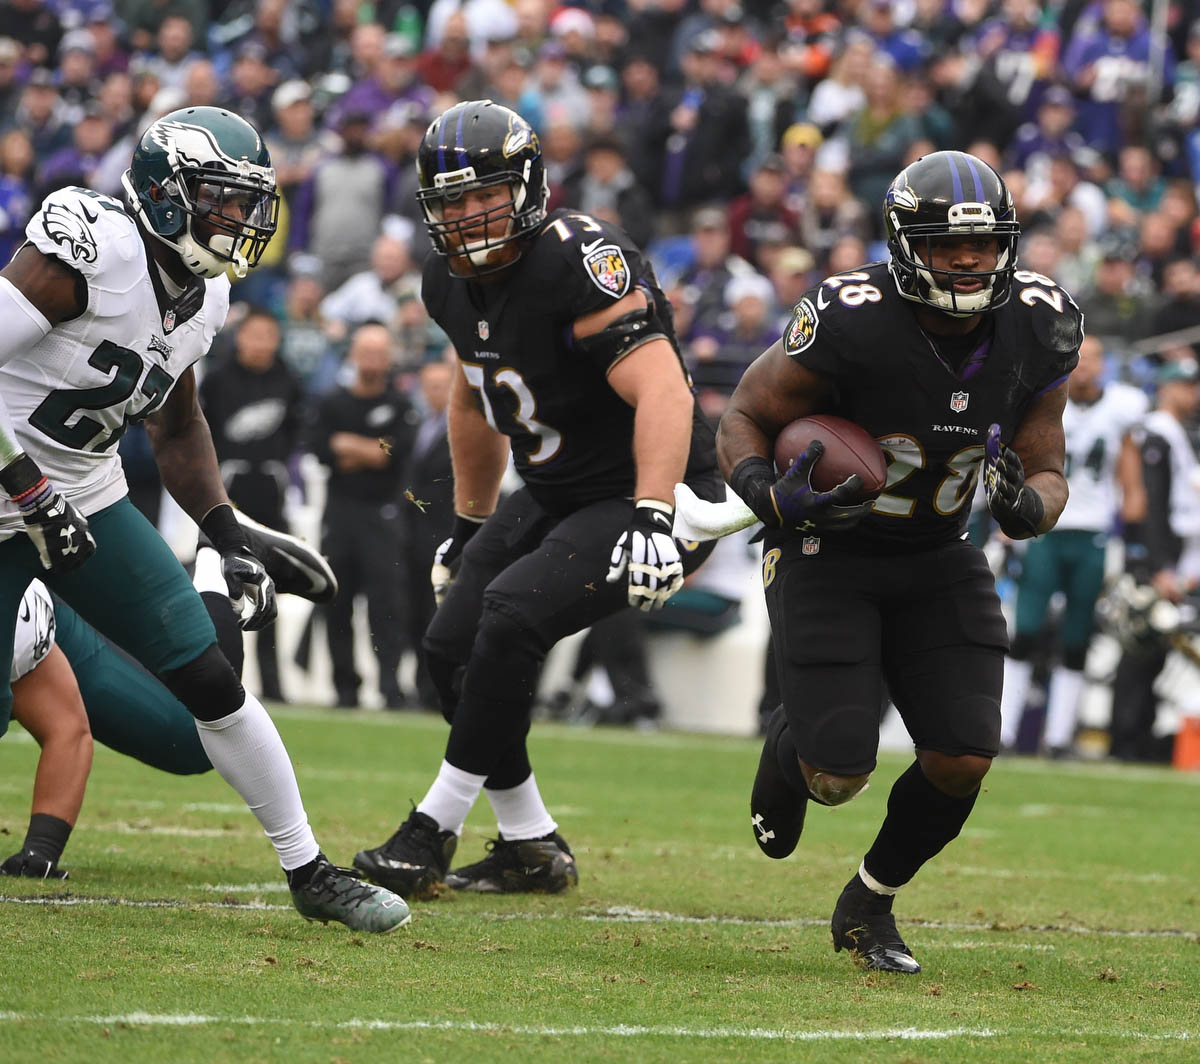 ravens vs eagles - photo #9